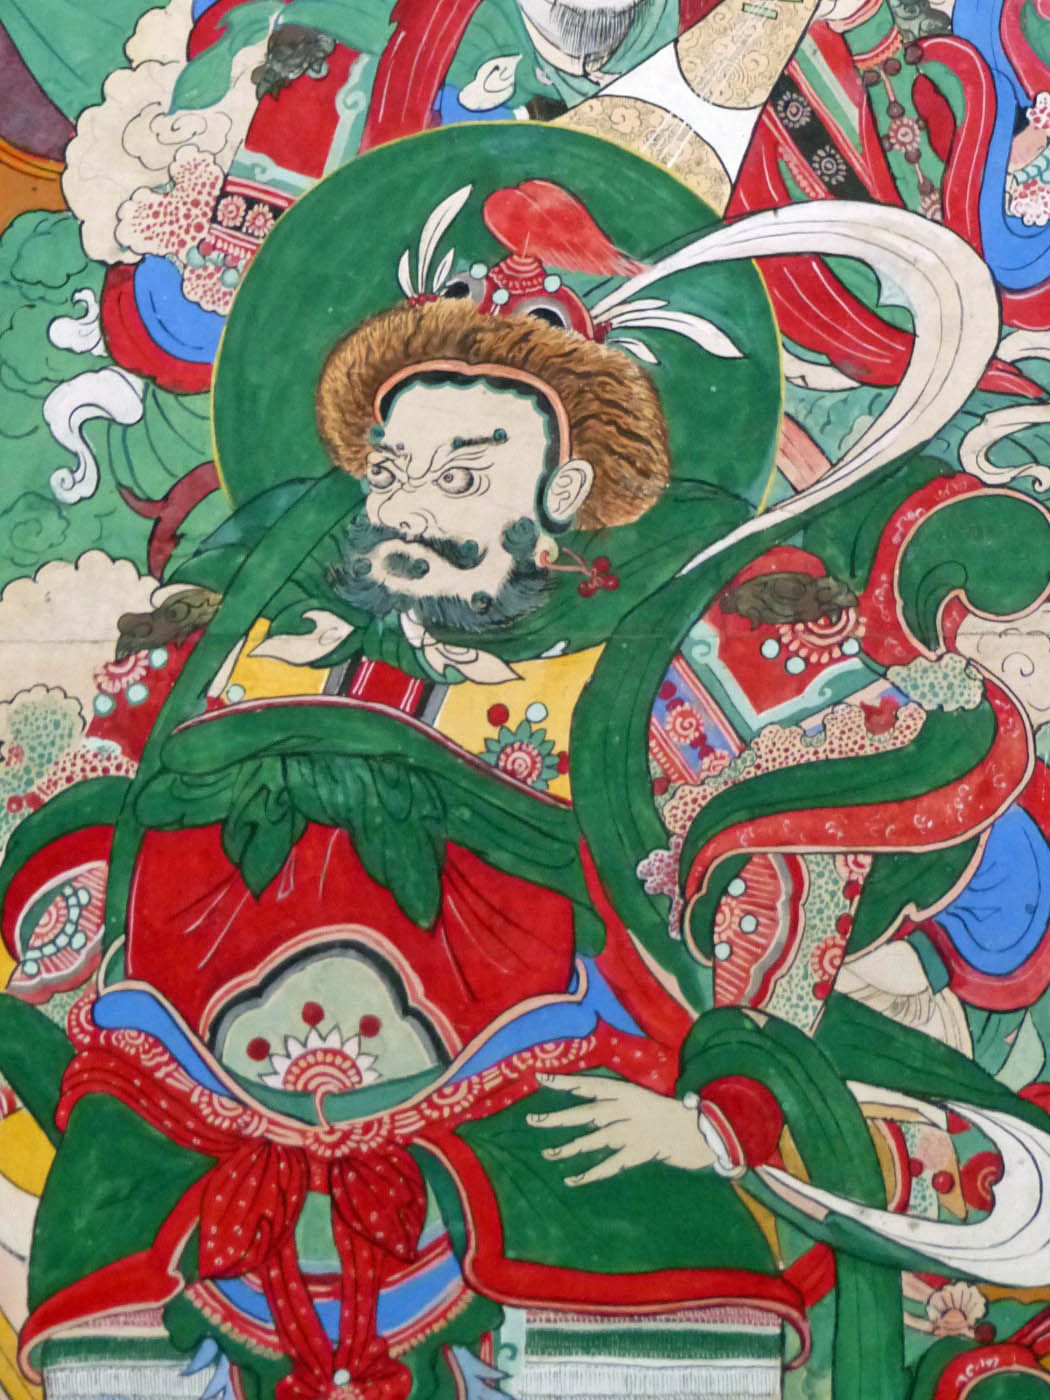 Colourful painting of fierce god